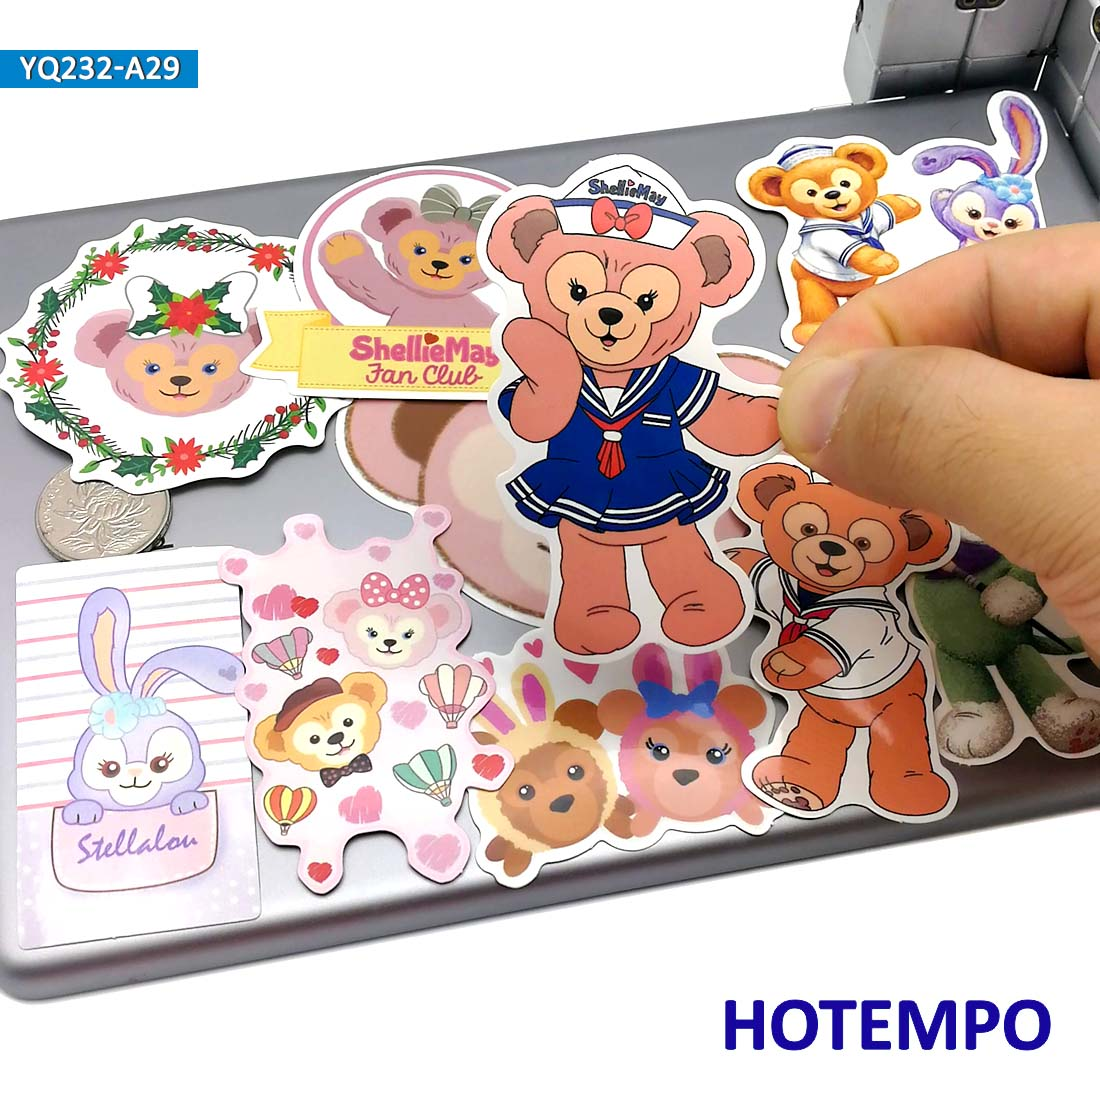 30pcs Cute Cartoon ShellieMay Bear Duffy Anime Stickers For Children Kids Mobile Phone Laptop Skateboard Luggage Guitar Stickers